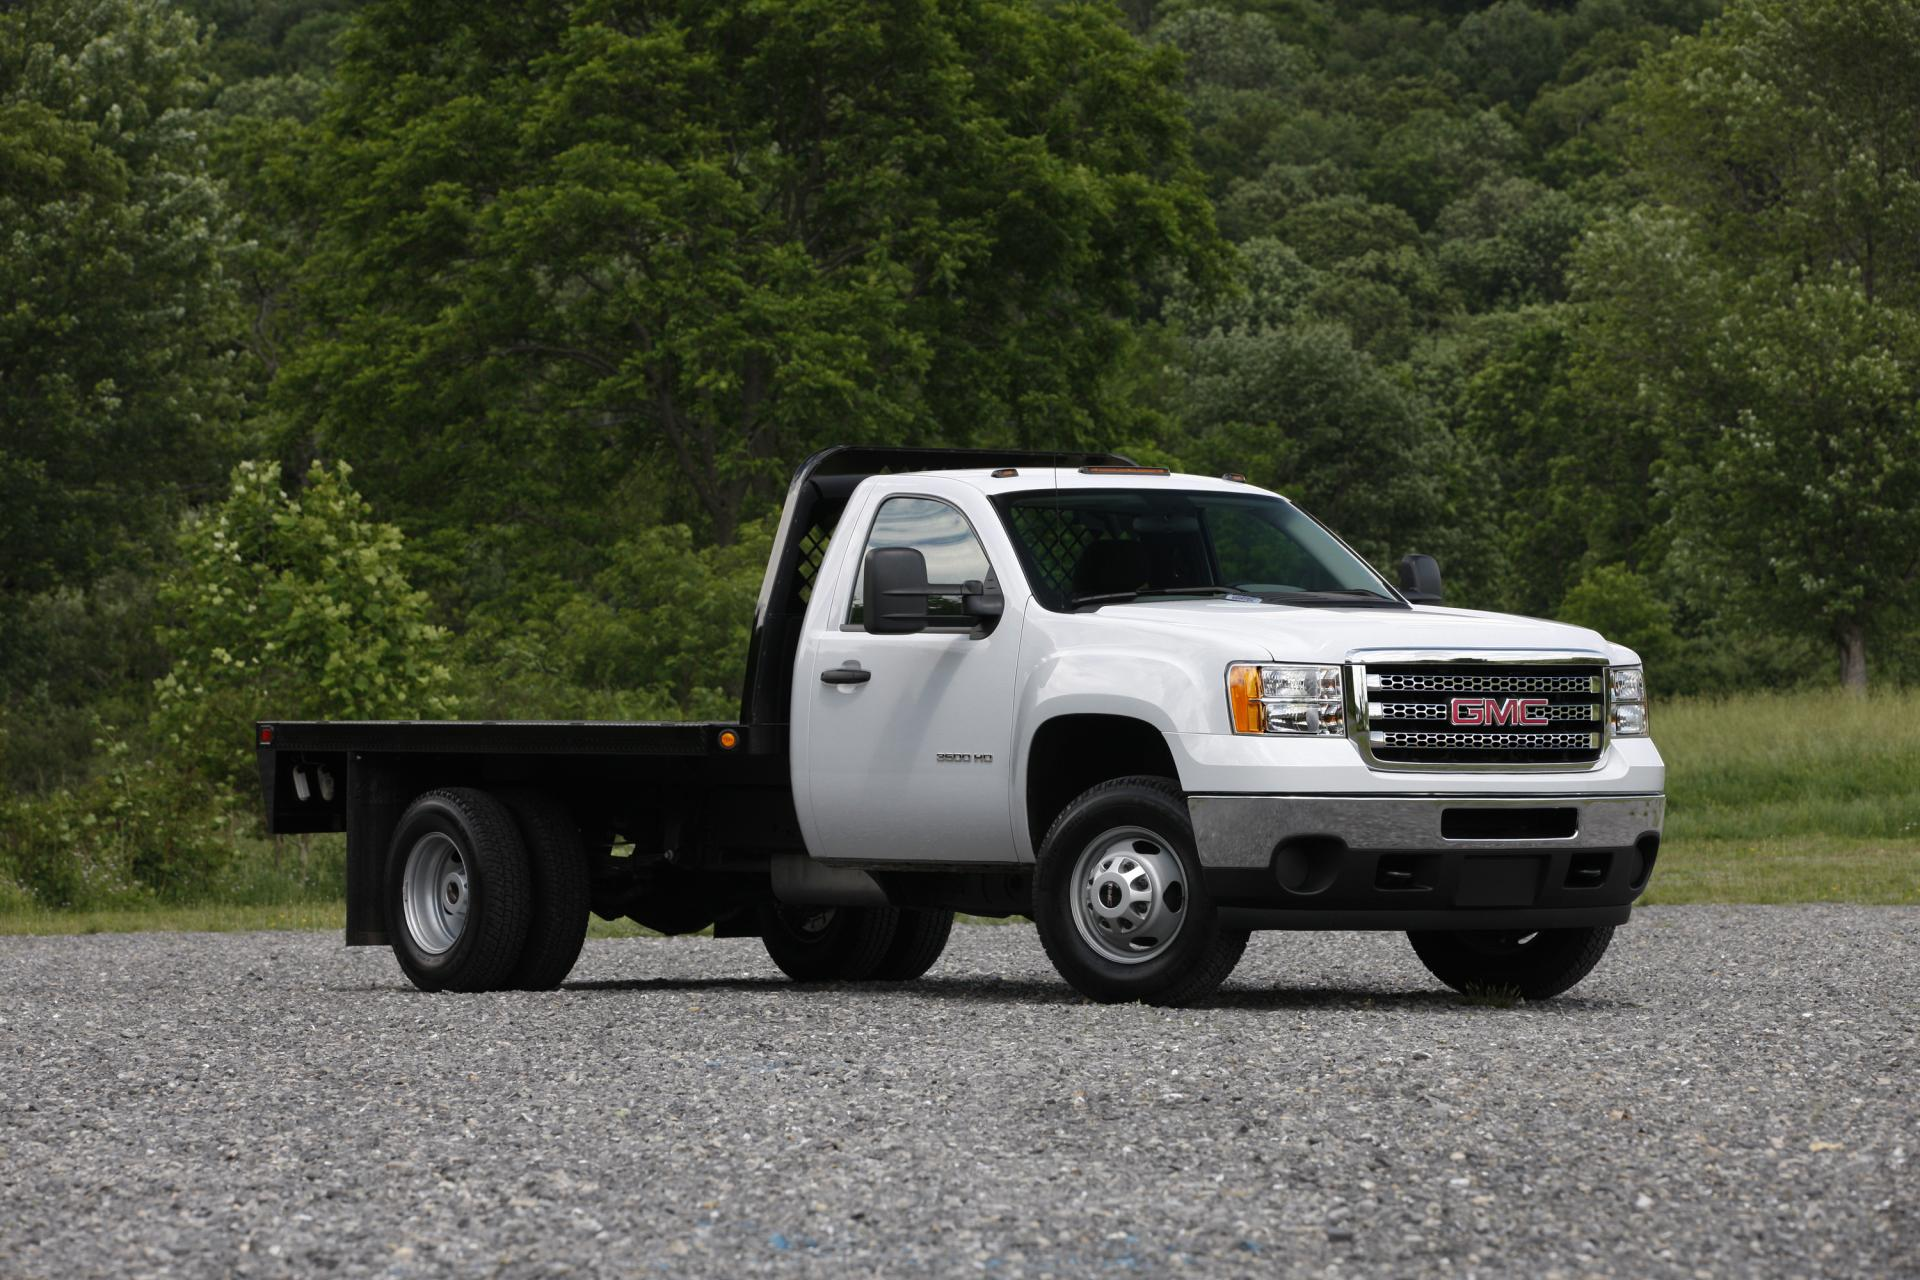 2014 GMC 3500HD Chassis Cab News and Information